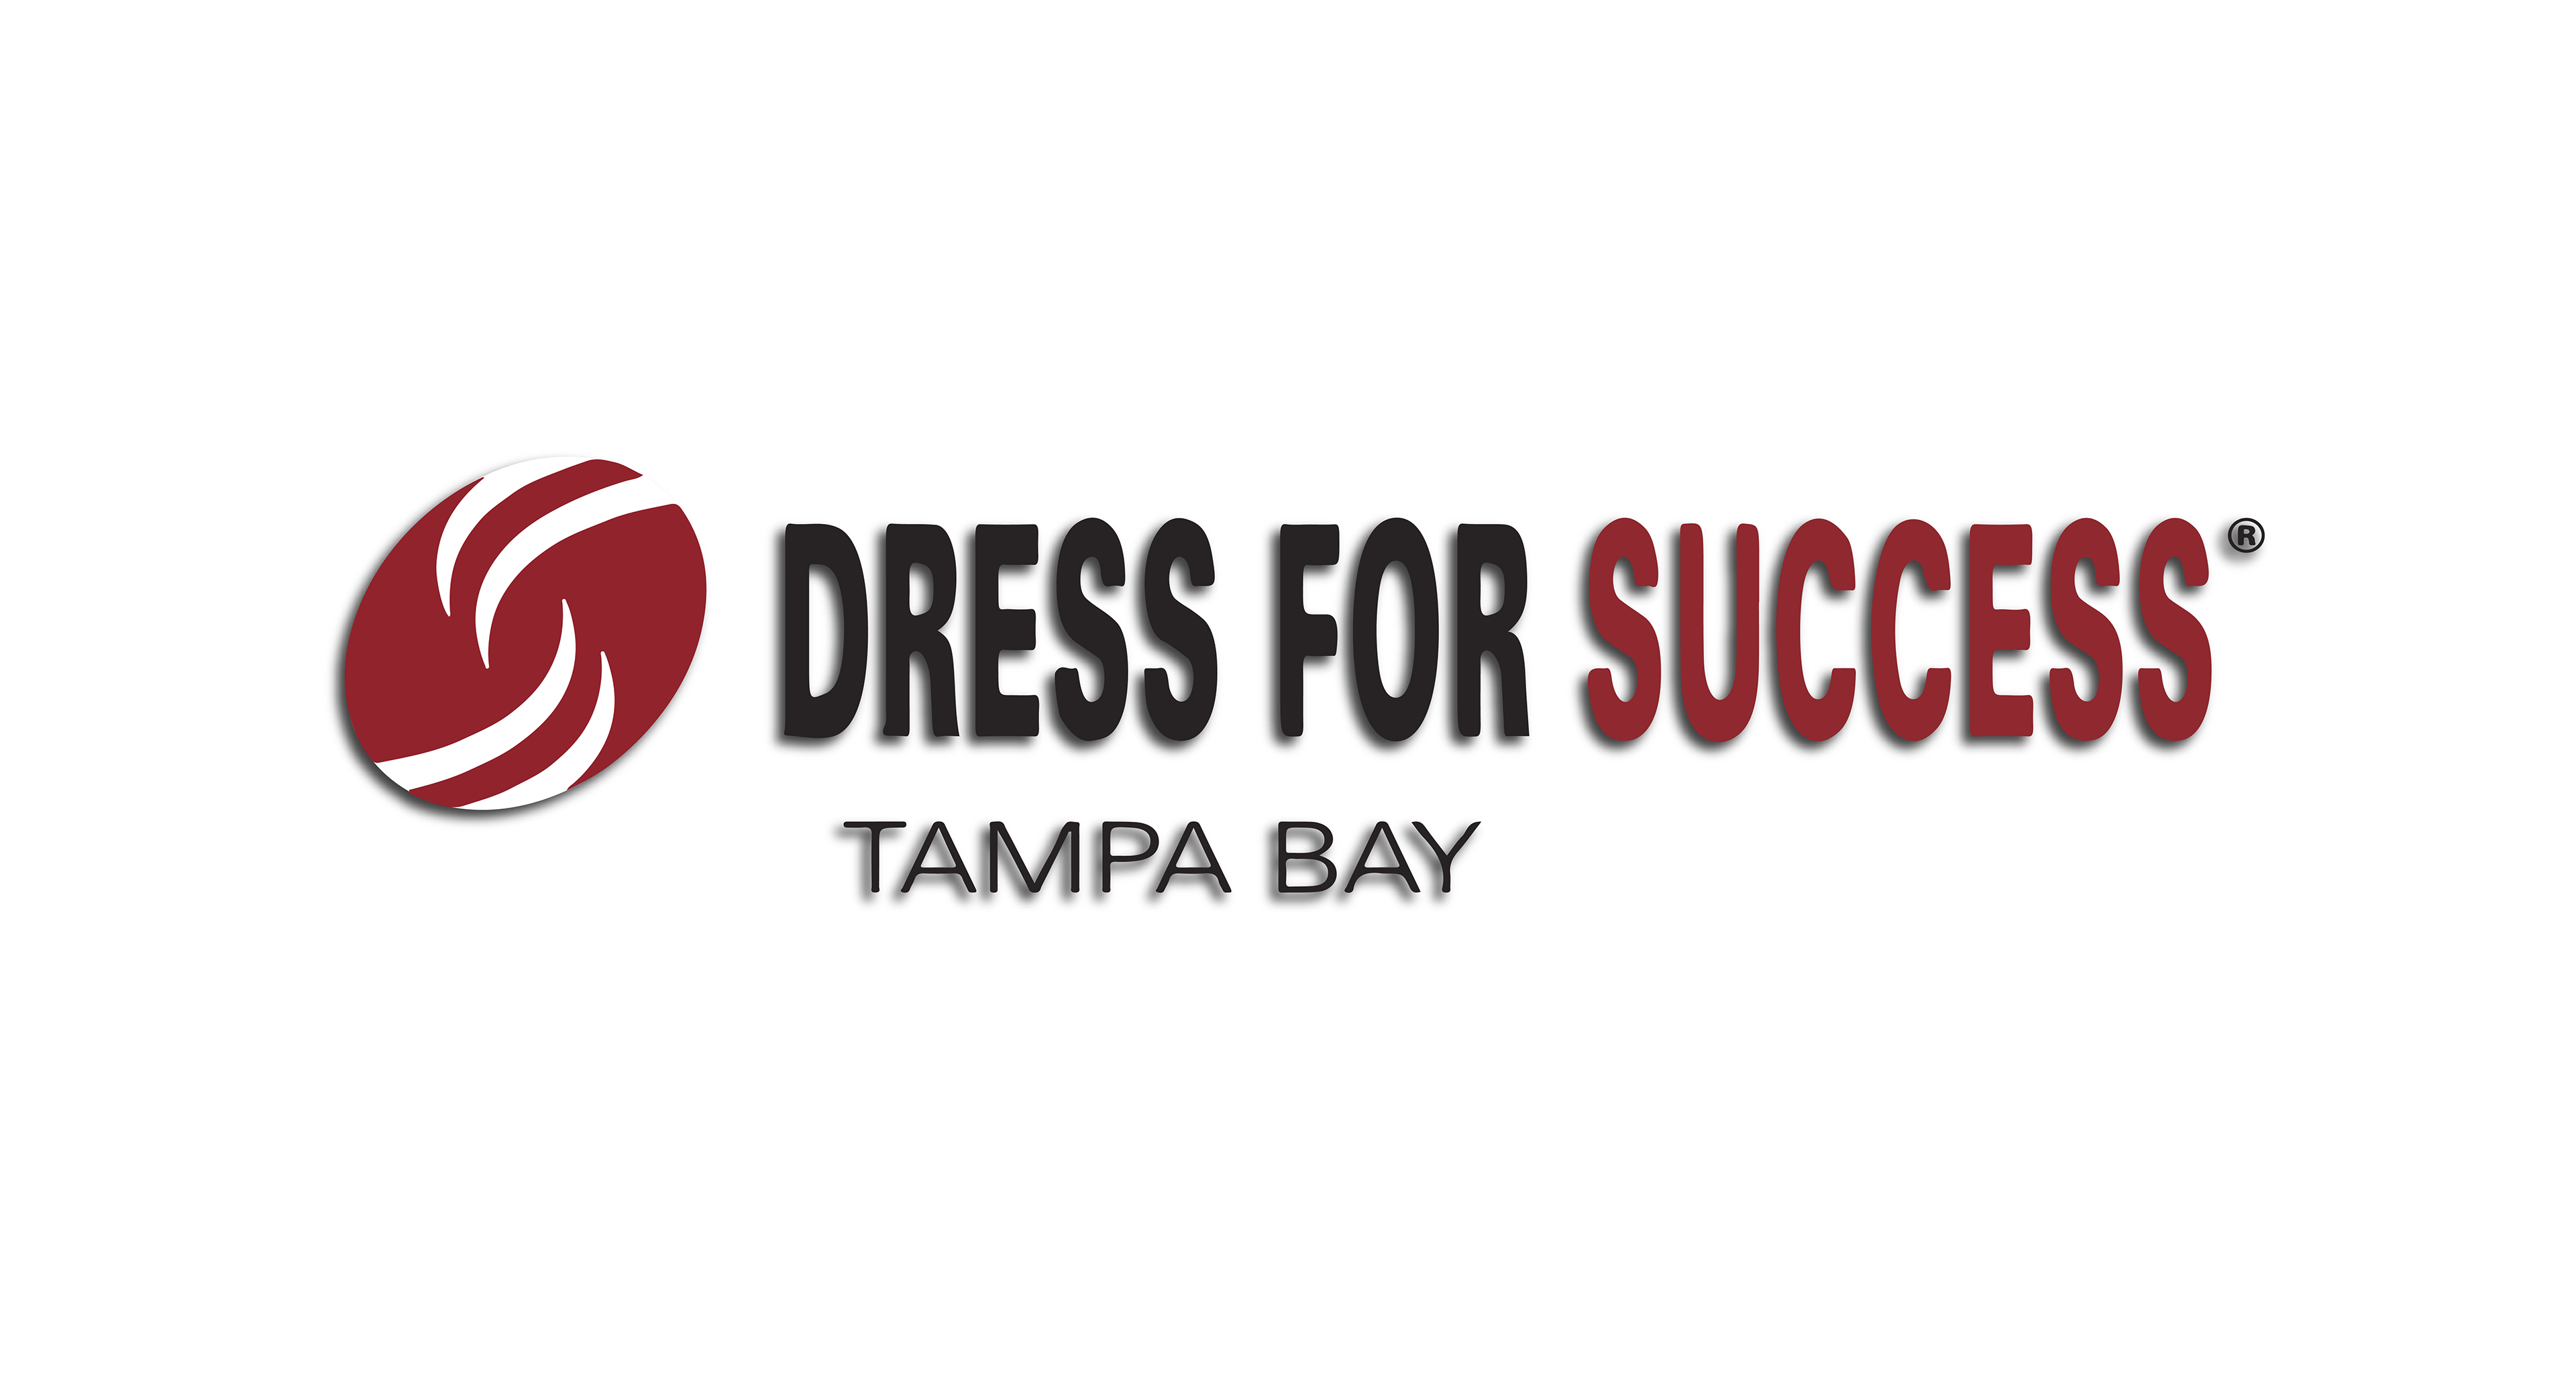 Marlisa K. Codner - Dress For Success Tampa Bay